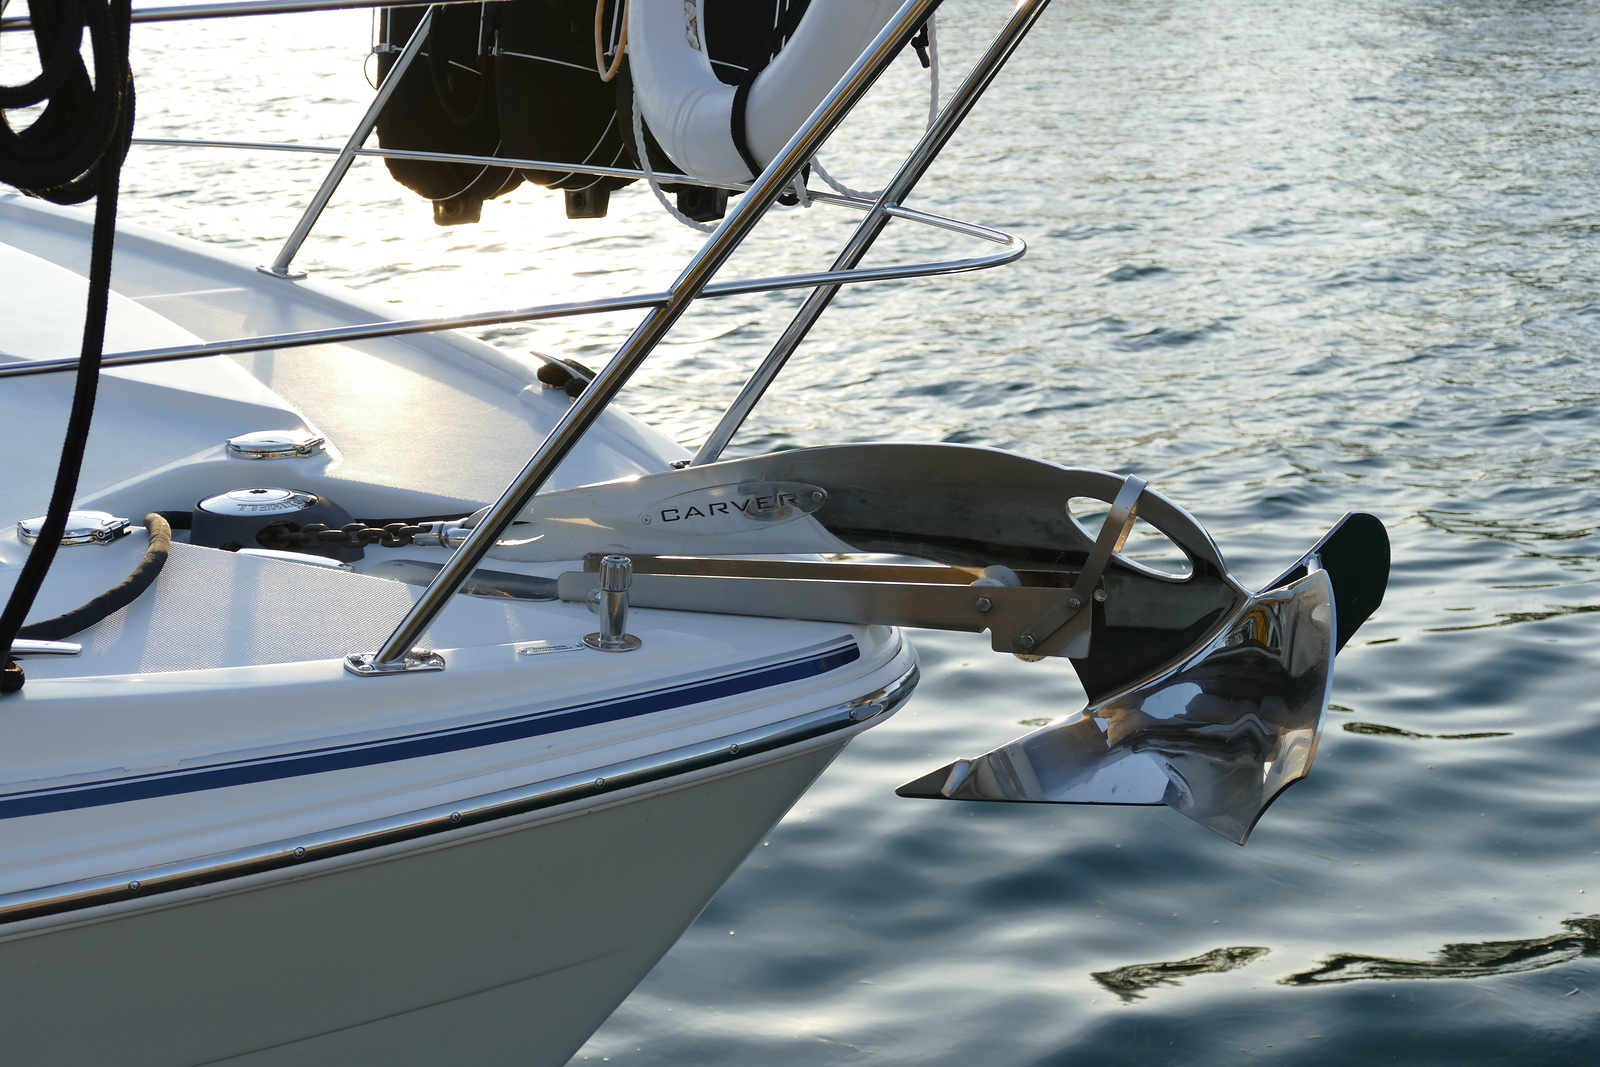 Chrome Polished 33lb Carver Anchor. Also have a 25lb Mantus anchor for the rear.